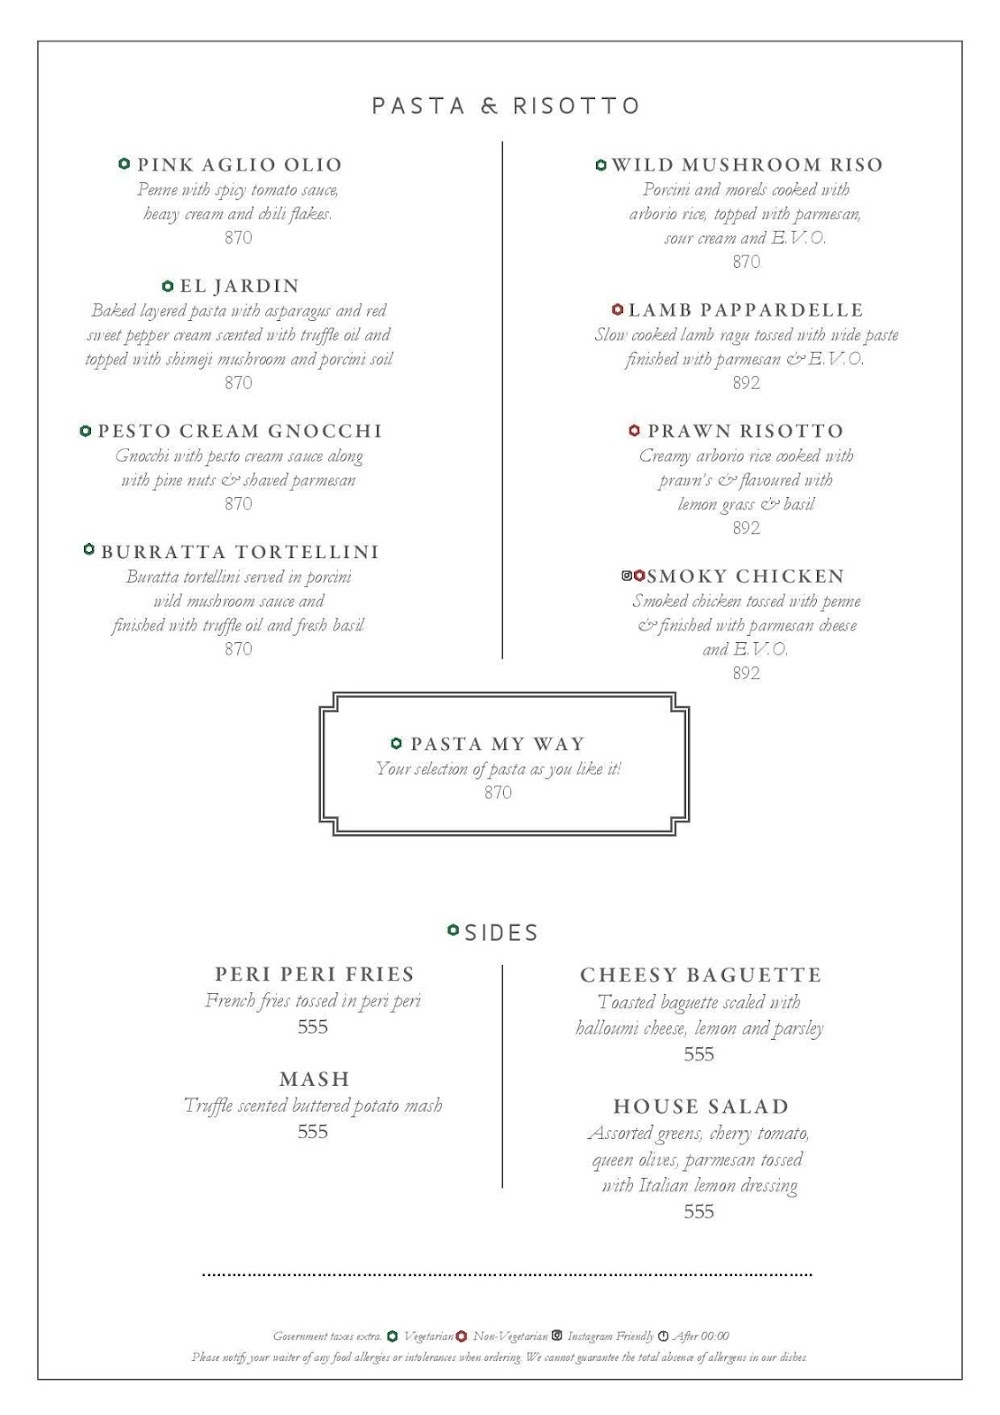 Long & Short - InterContinental menu 7